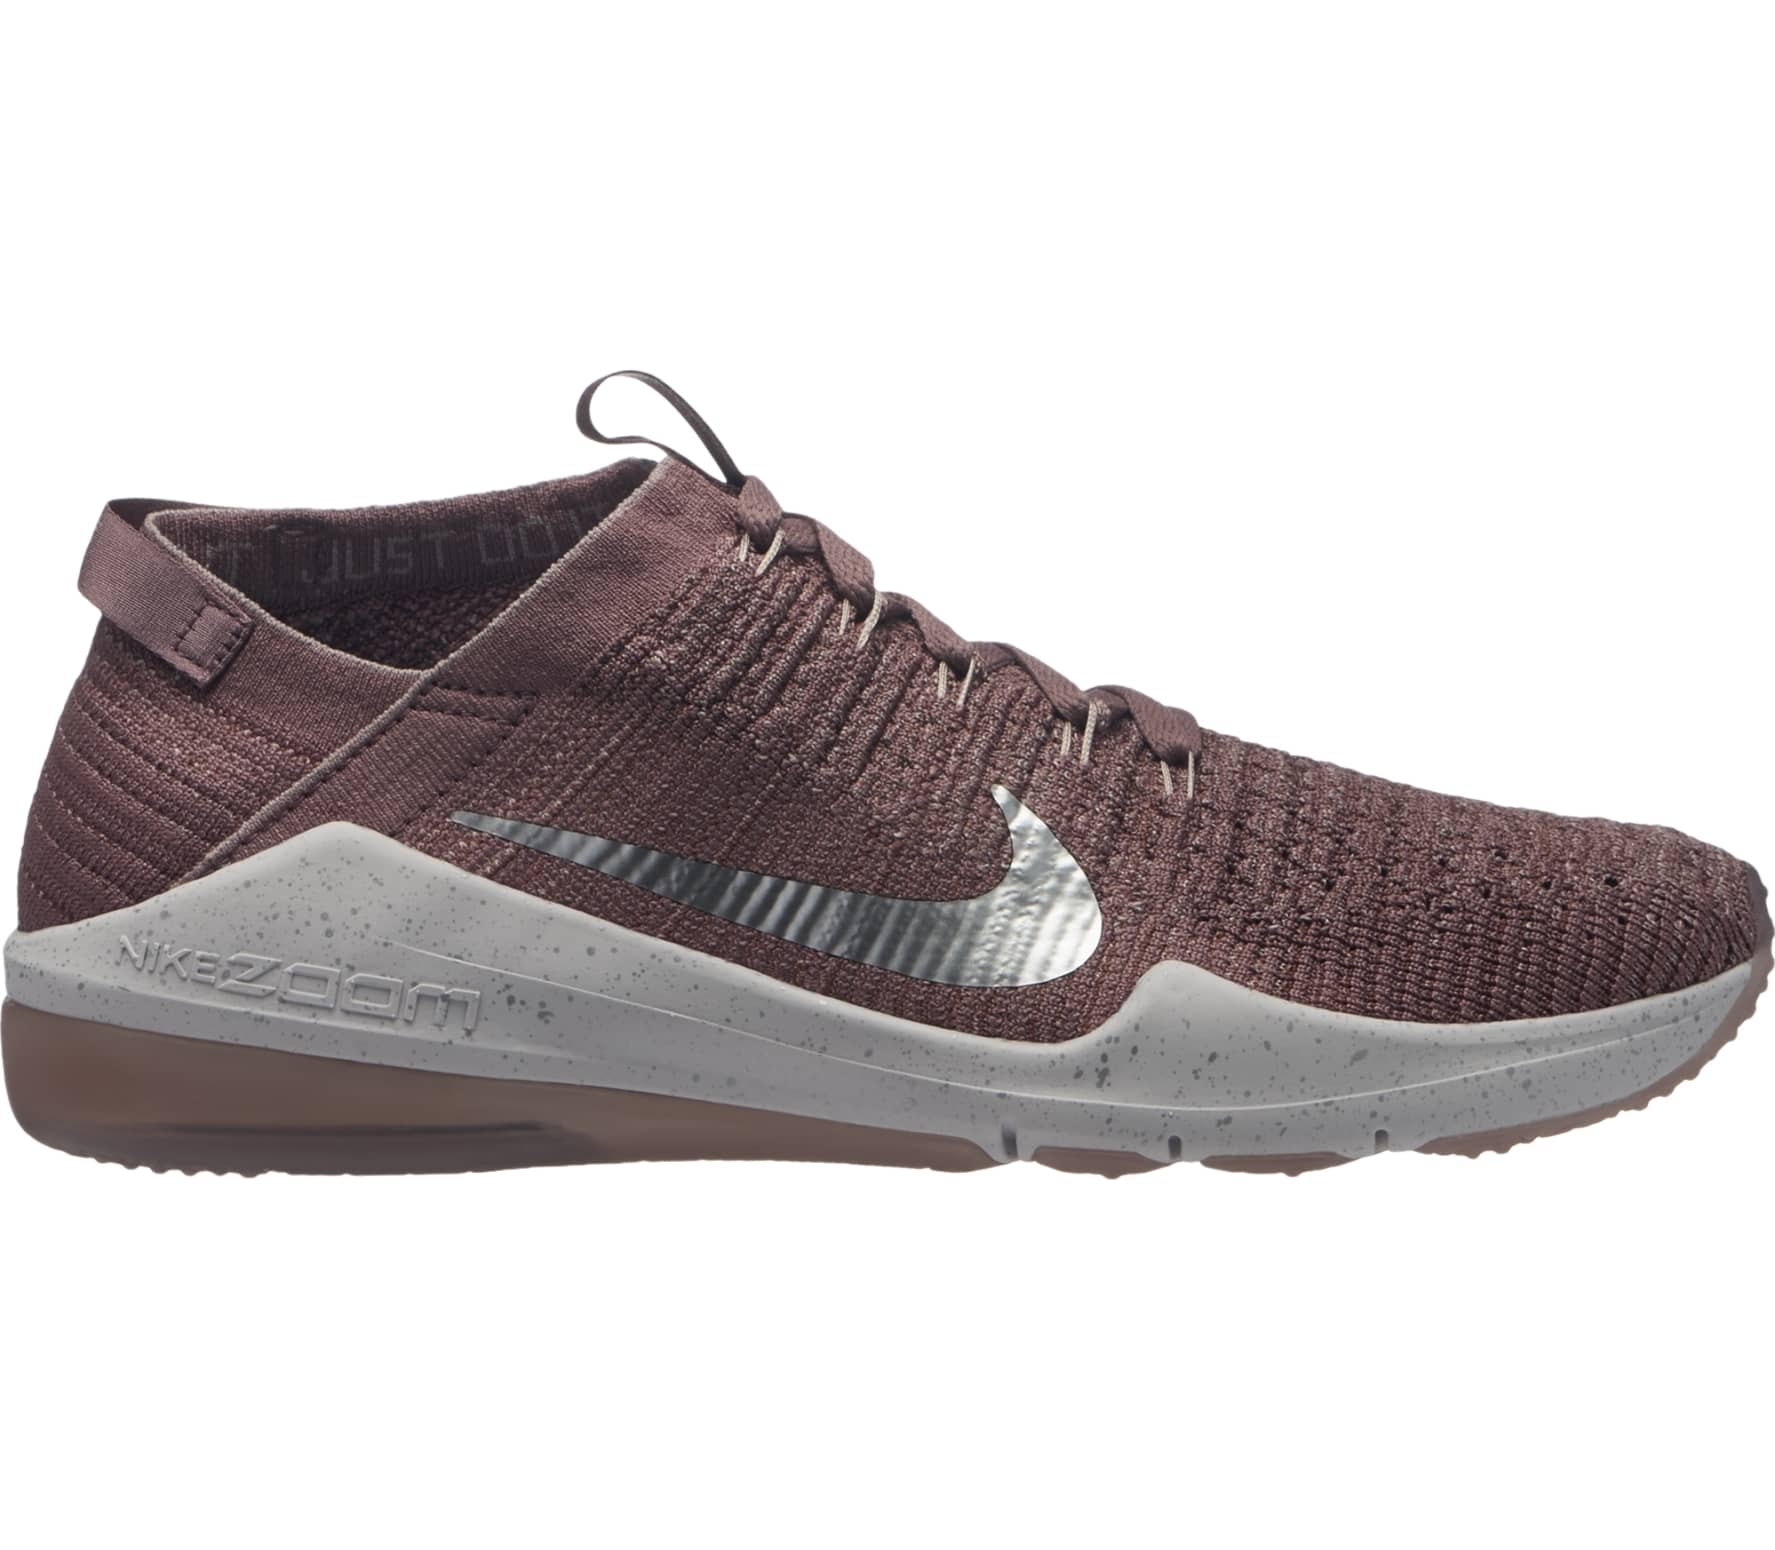 Nike - Air Zoom Fearless Flyknit 2 LM women s training shoes (brown ... 99b8d6b9251